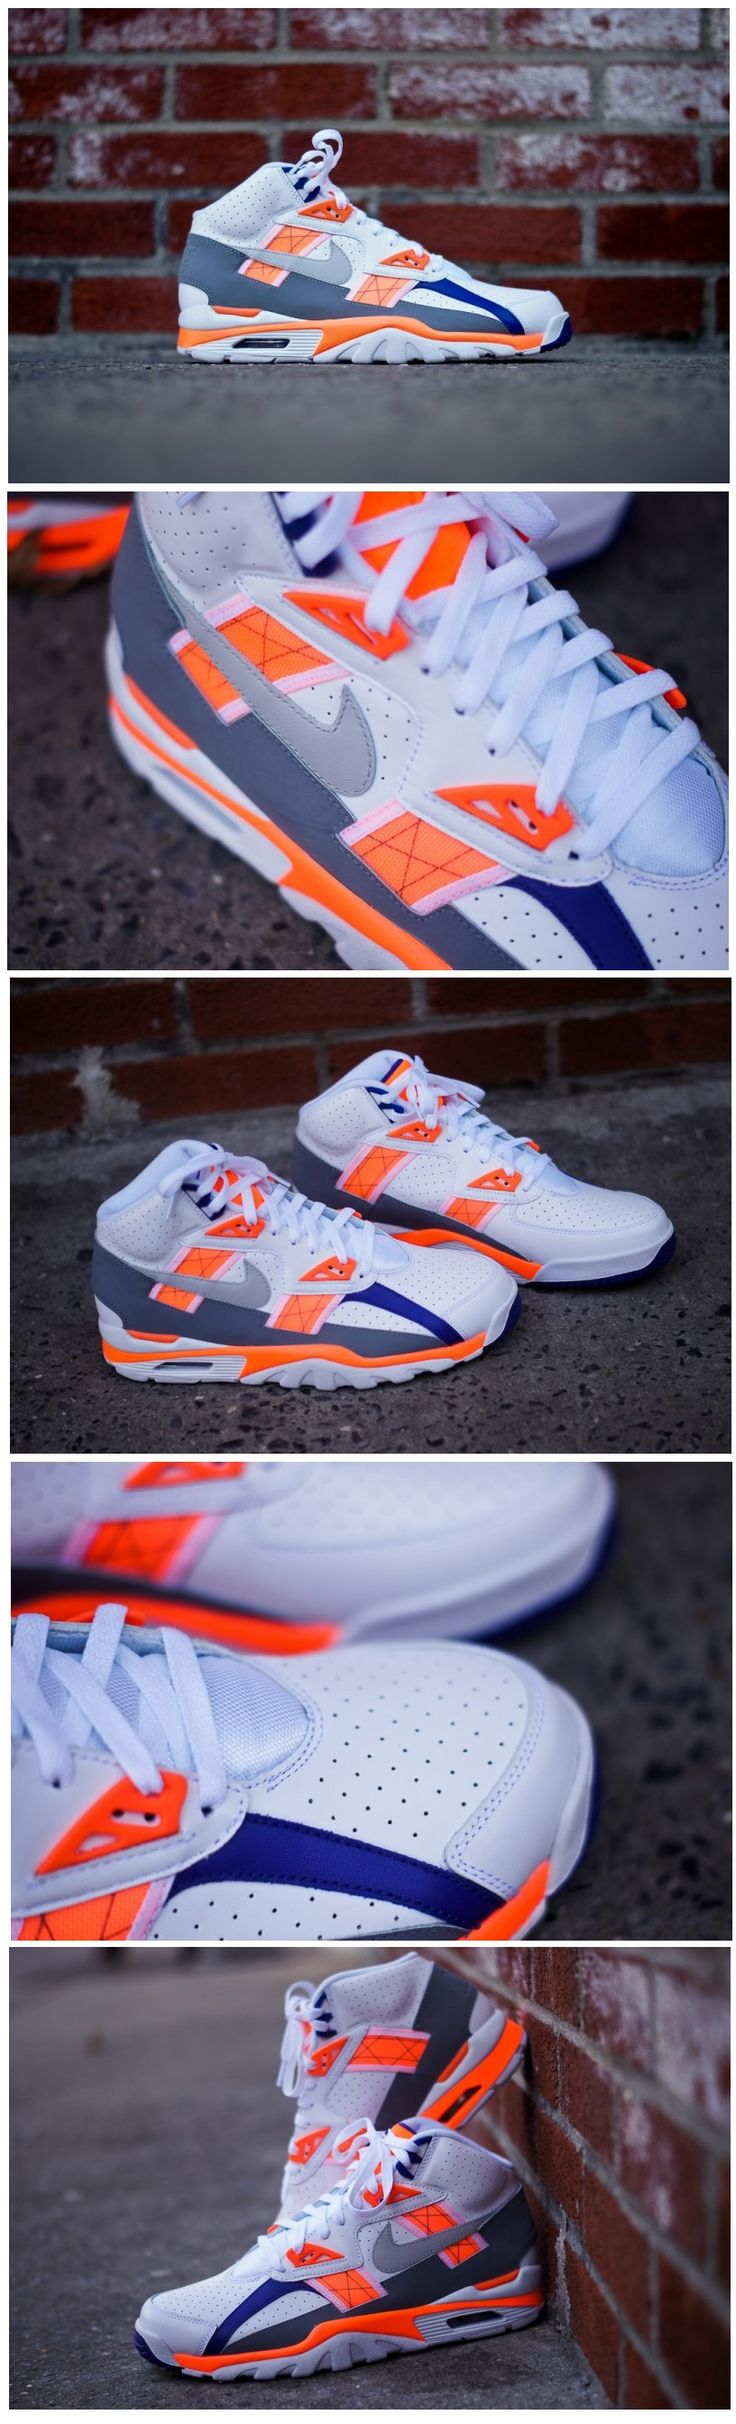 "Nike Air Trainer SC ""Auburn"". Bo Jackson's iconic sneaker re-designed with a mostly white upper with hints of purple and orange."